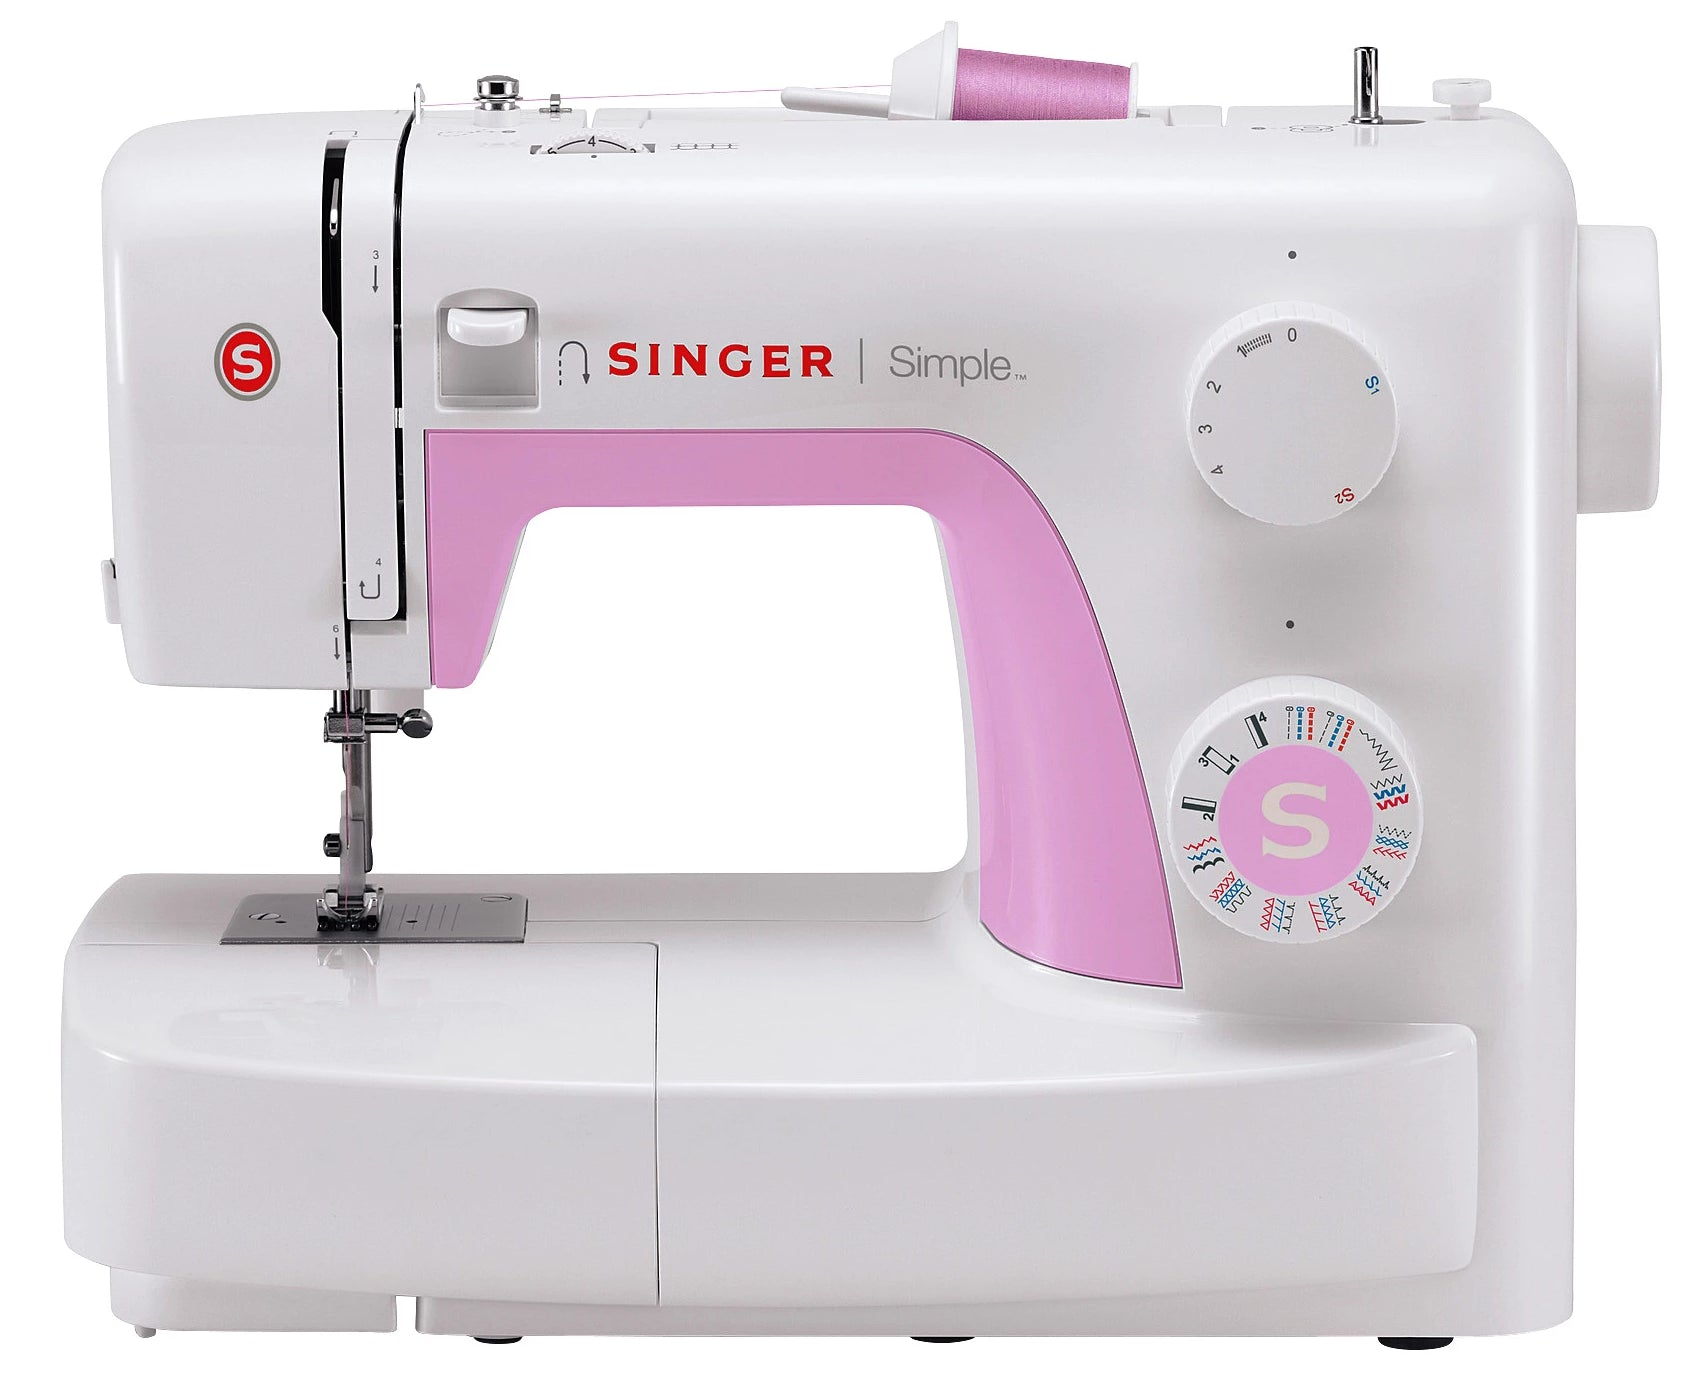 Singer Simple 3223 Sewing Machine - Good as New